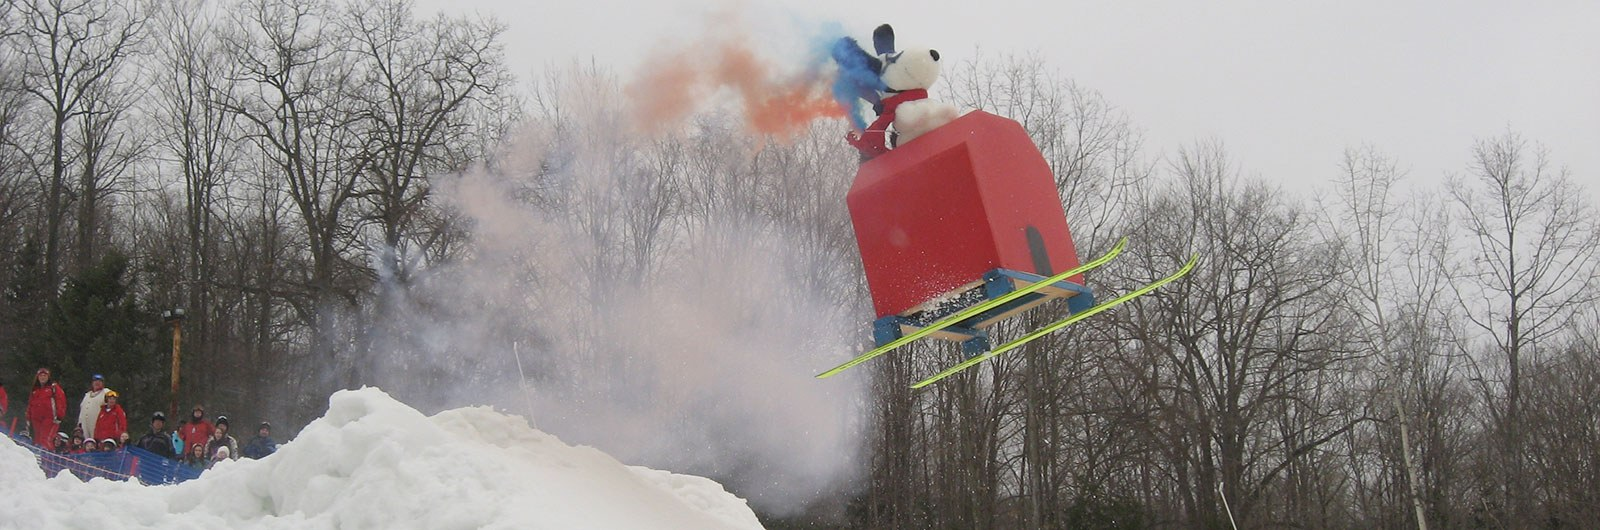 Snoopy and doghouse over jump at Dummy Downhill event